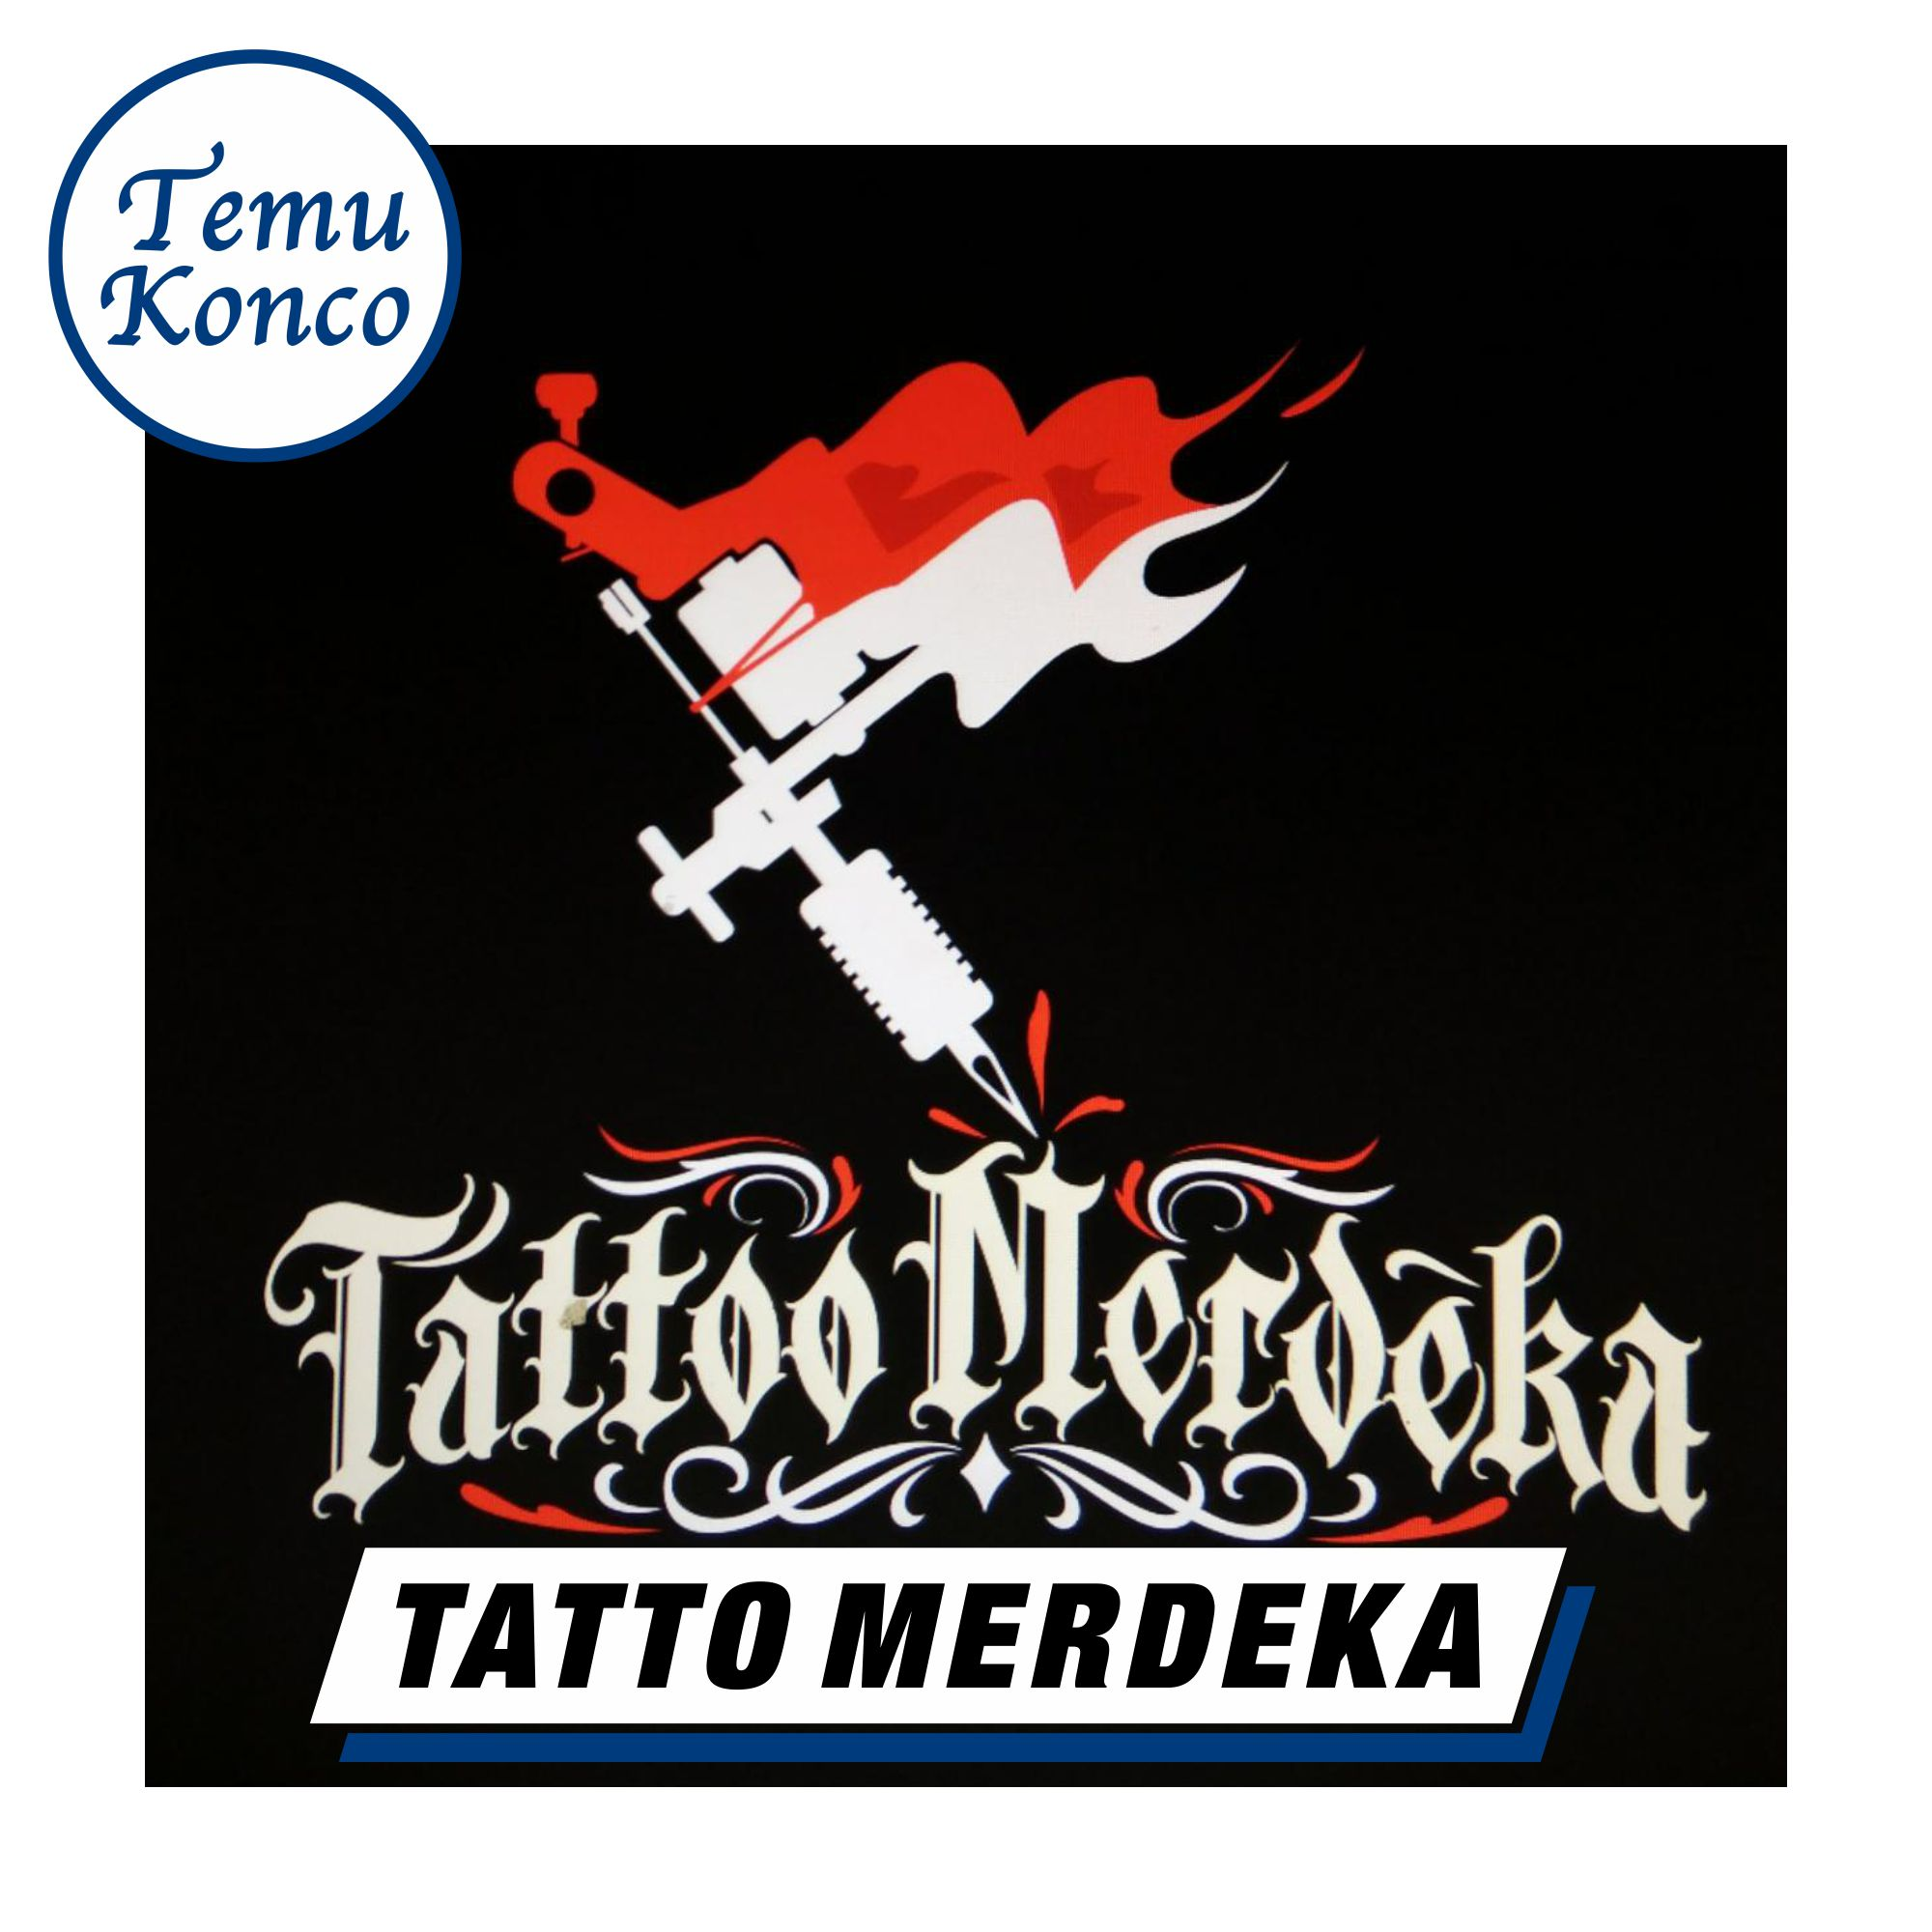 TemuKonco Podcast Tattoo Merdeka